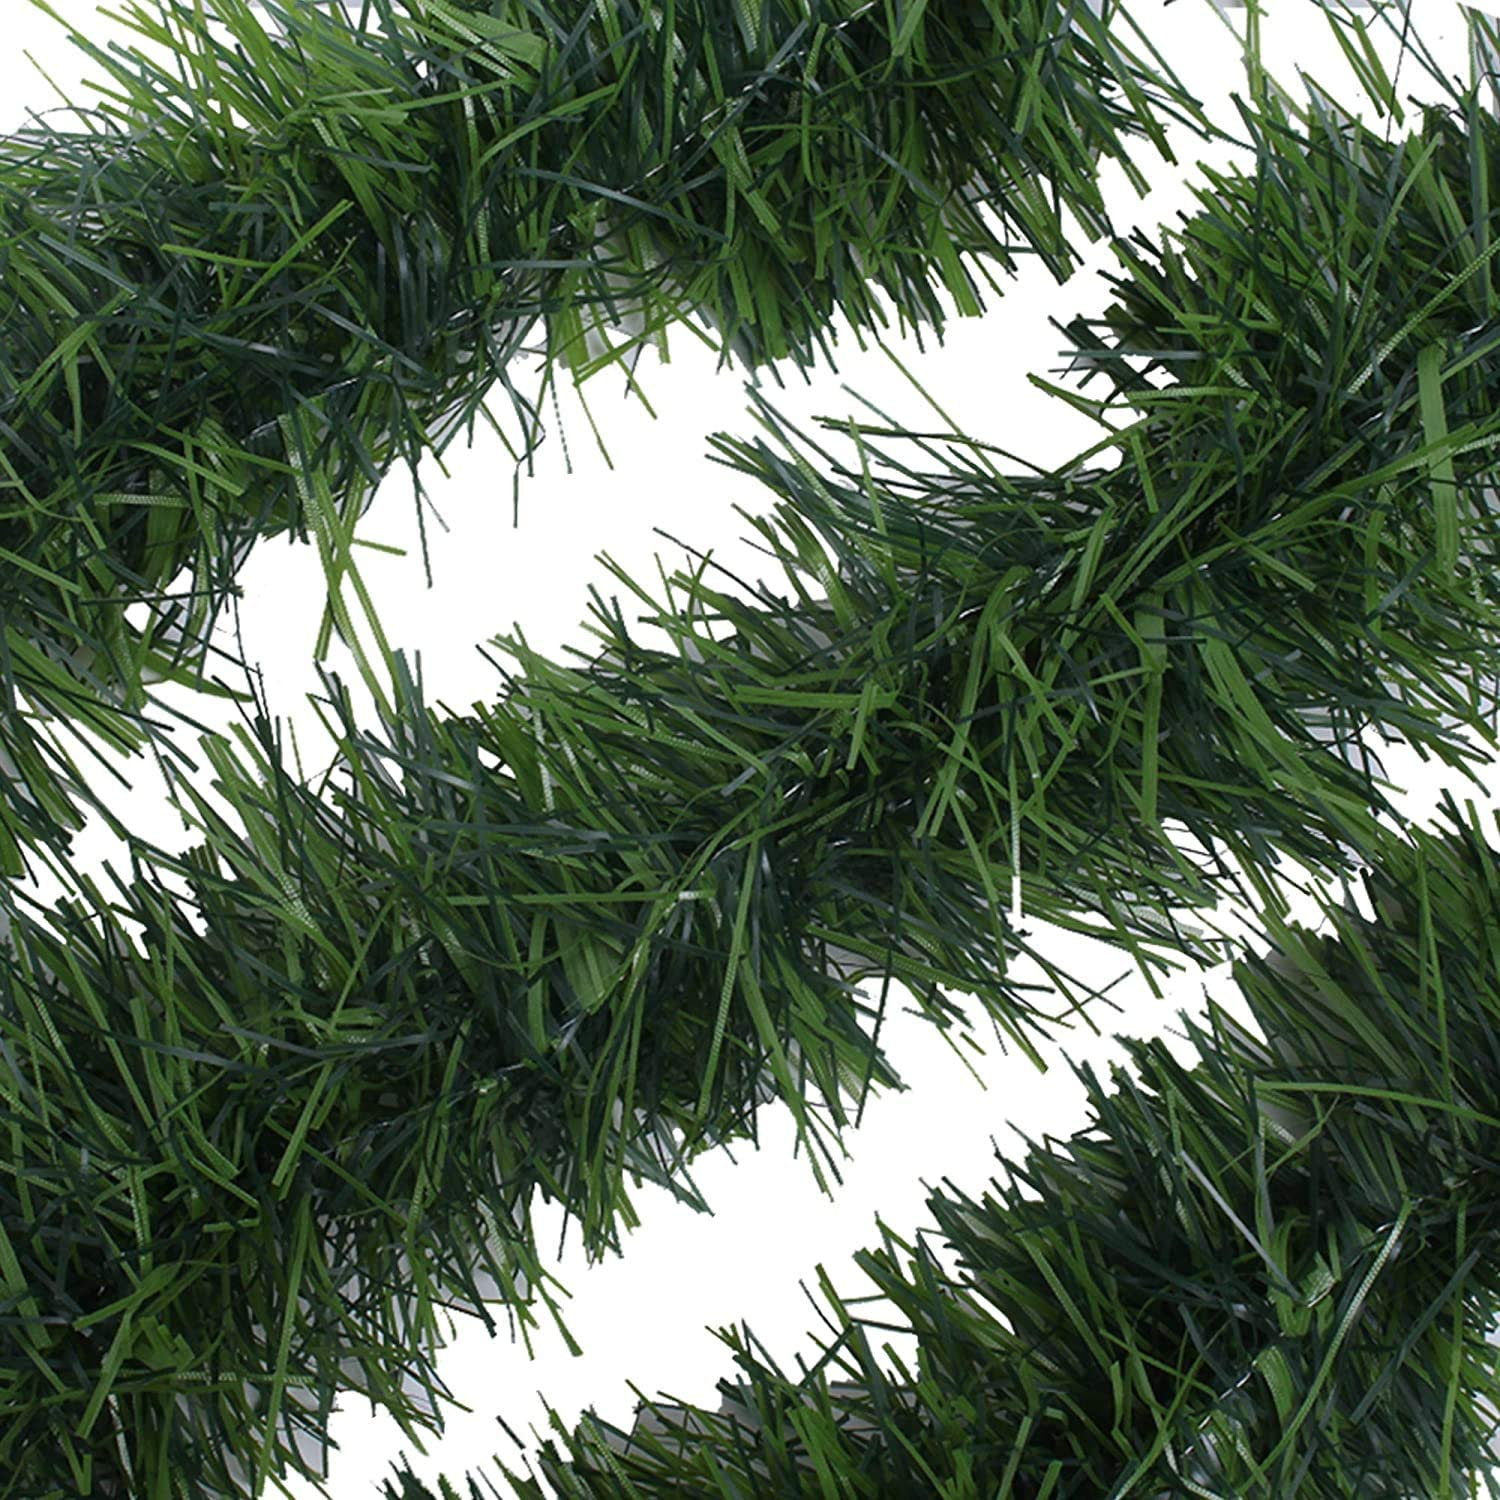 Non-Lit Soft Green Holiday Decor for Outdoor or Indoor Use Premium Quality Home Garden Artificial Greenery or Wedding Party Decorations. WDSF 50-Foot Soft Green Garland for Christmas Decorations